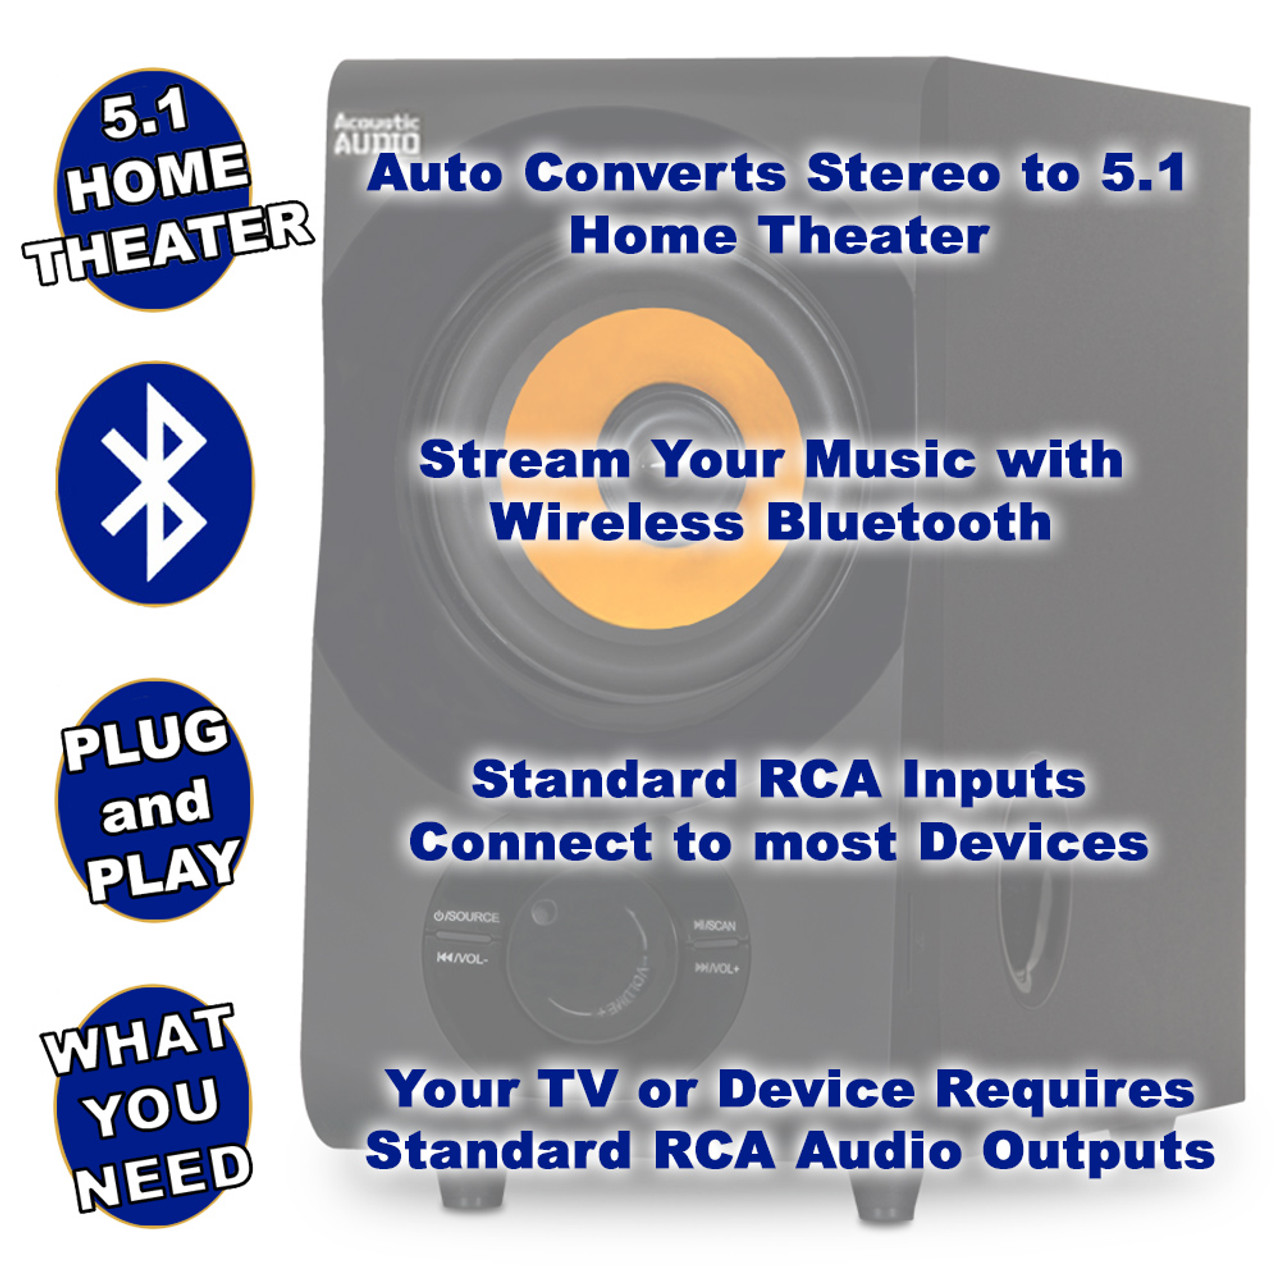 acoustic audio aa5170 home theater 5 1 bluetooth speaker system with fm and 5 extension cables onlyfactorydirect com [ 1000 x 1000 Pixel ]